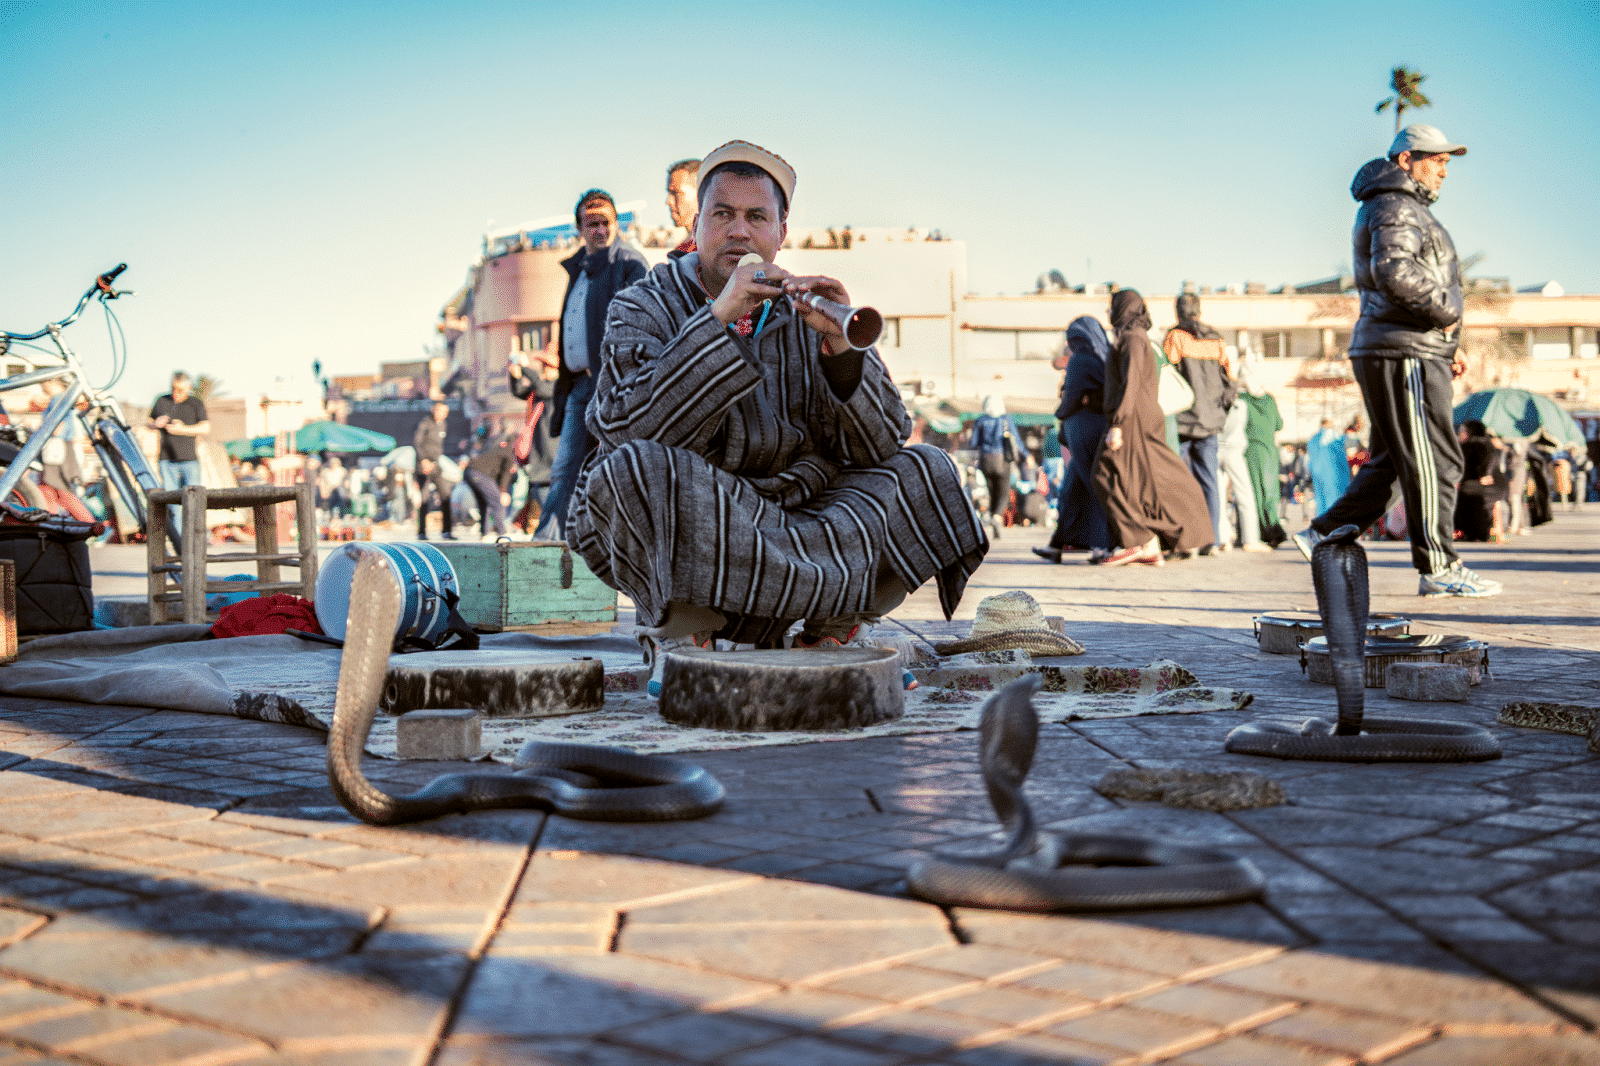 Marrakech travel - entertainers